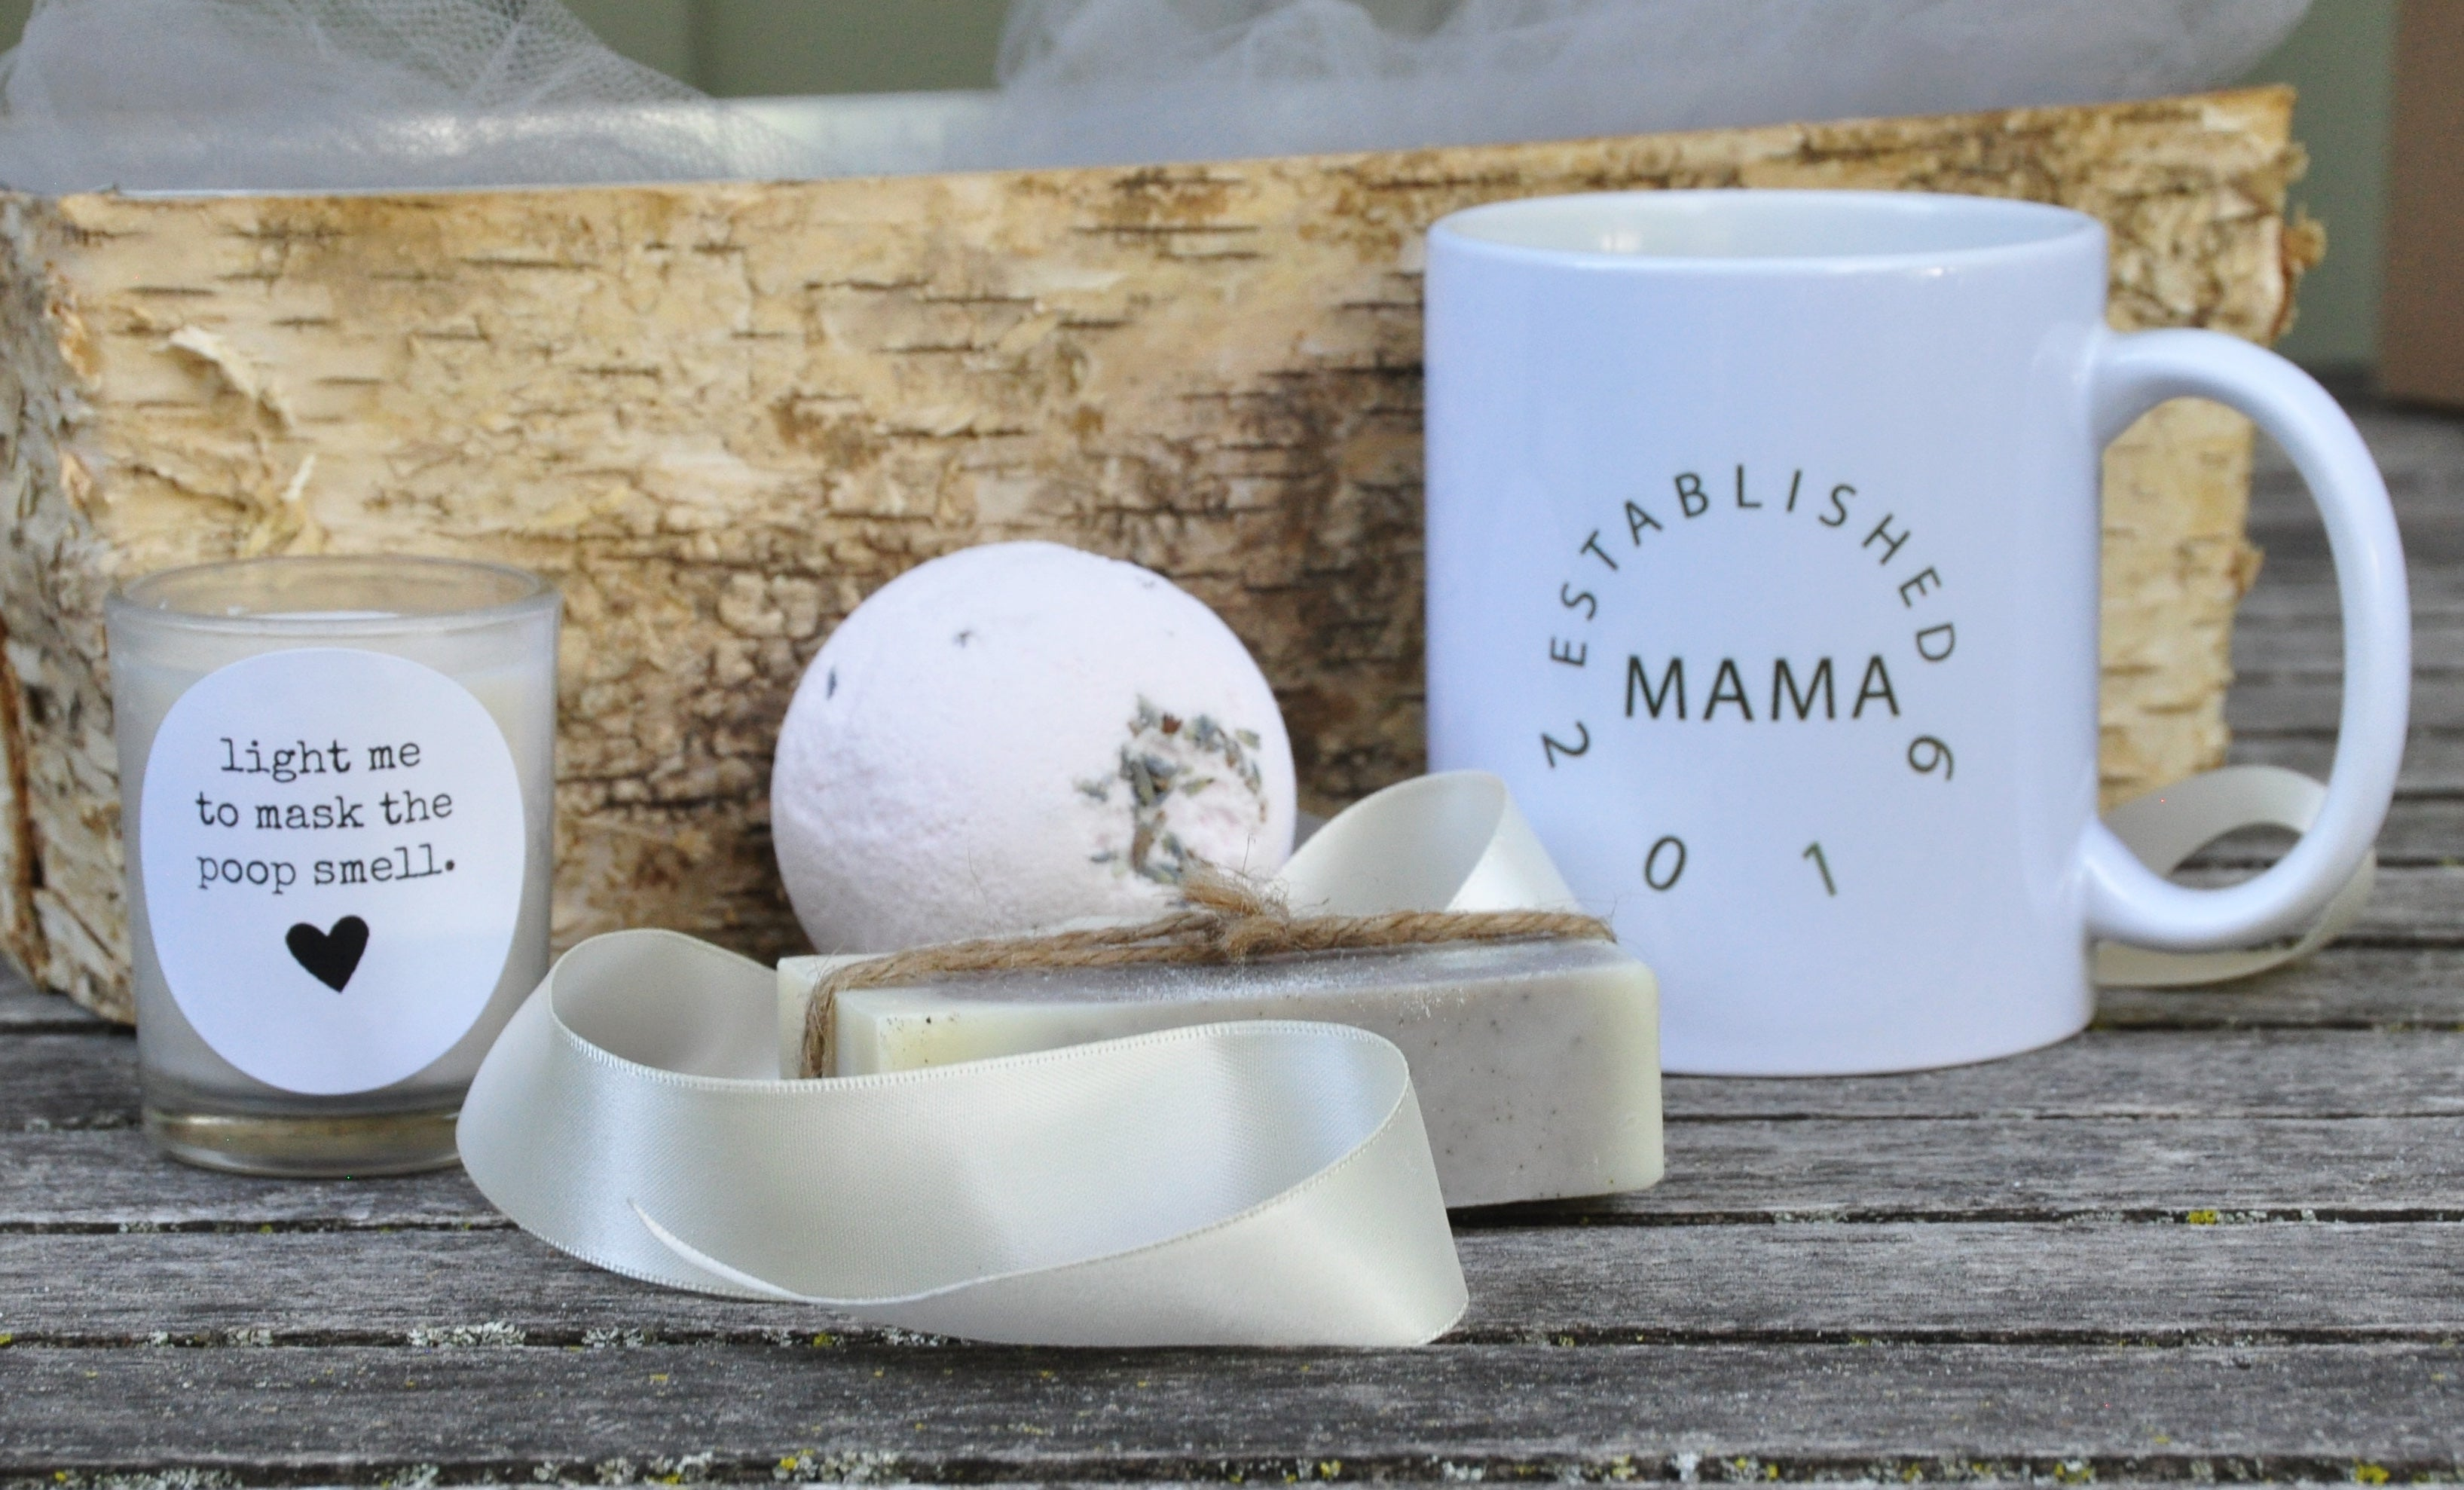 things a new mom needs for herself spa gift set pregnancy gift new mom gift basket new mom gift new mom new baby gift new baby mothers day gifts for first time mothers mothers day gift basket mothers day gift mom gift homemade gifts for mom gift for new mom gift basket for new mom gift basket first mothers day ideas